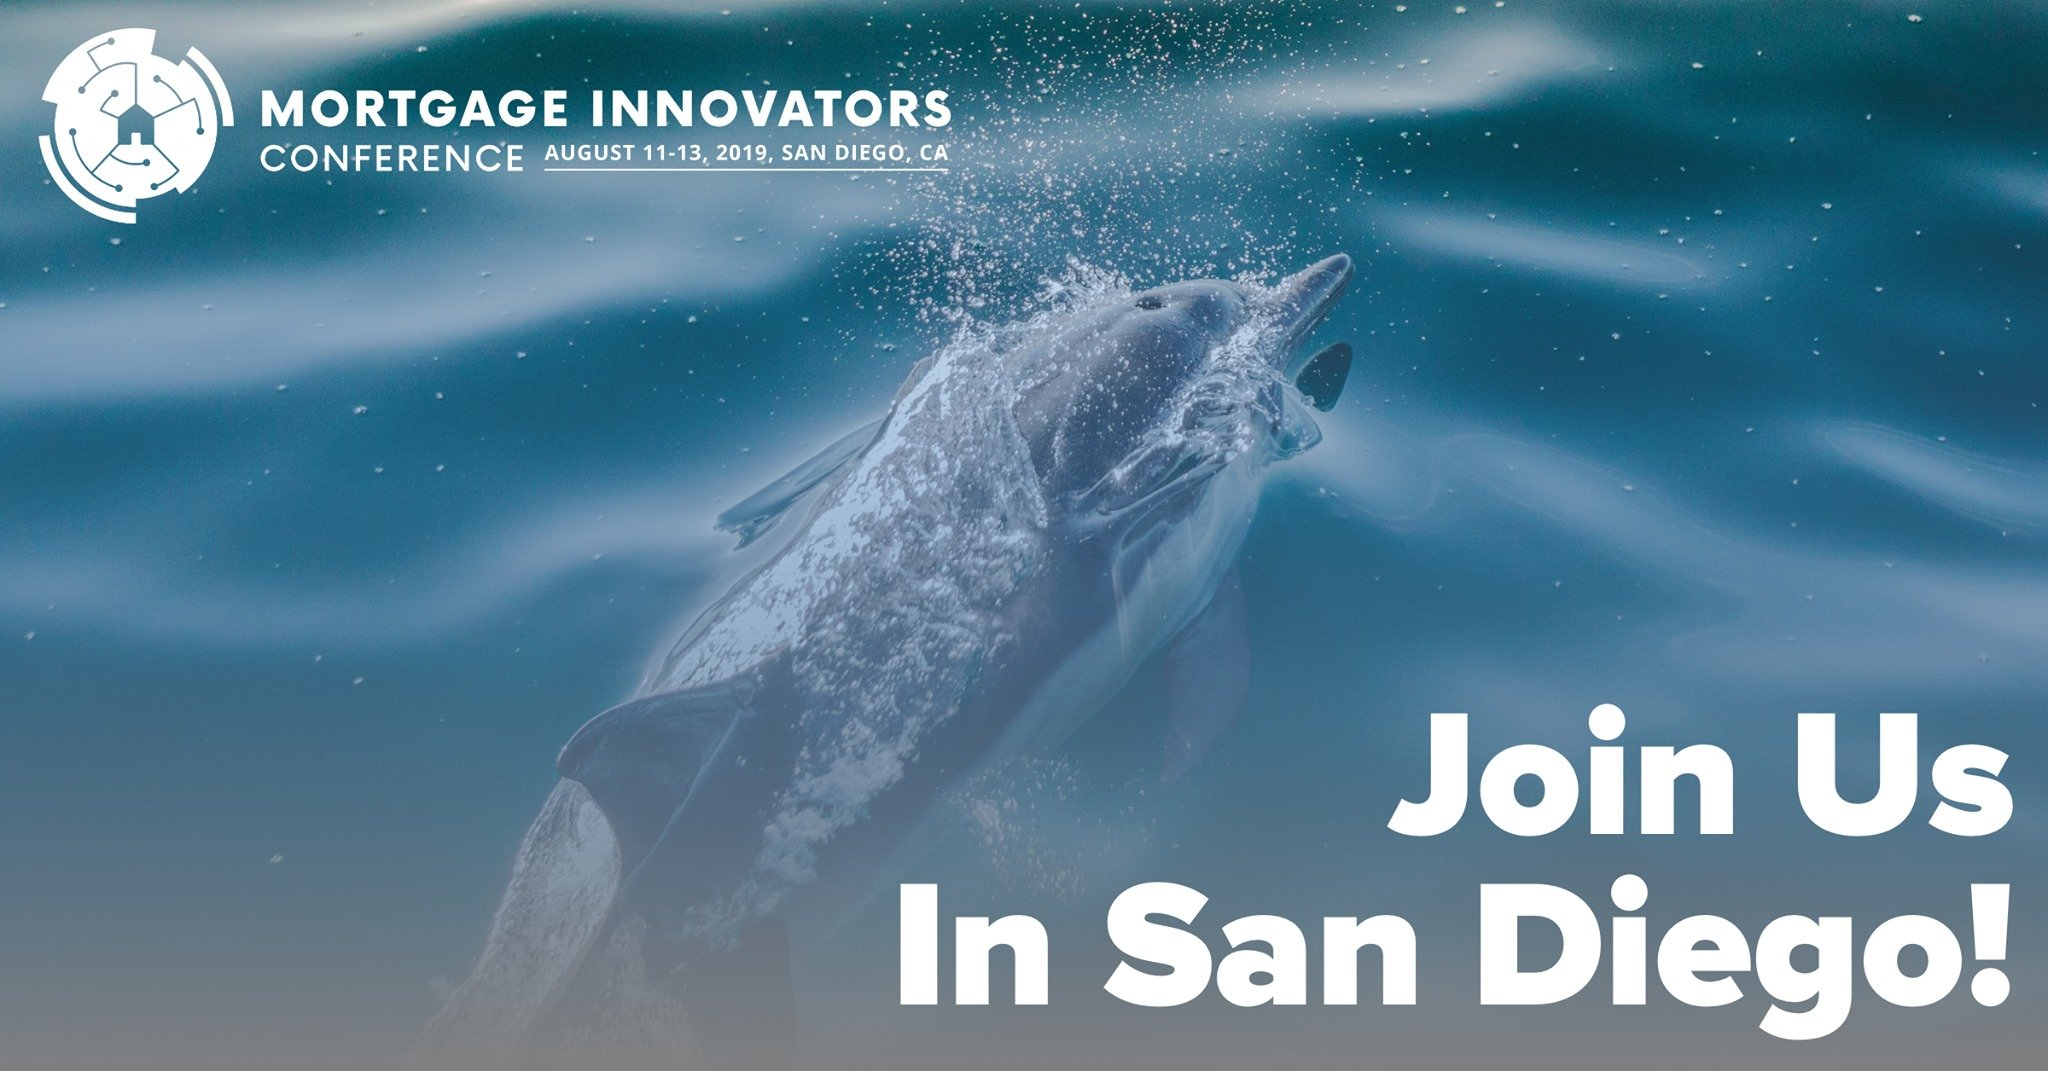 Join ABT at the 2019 Mortgage Innovators' Conference in San Diego